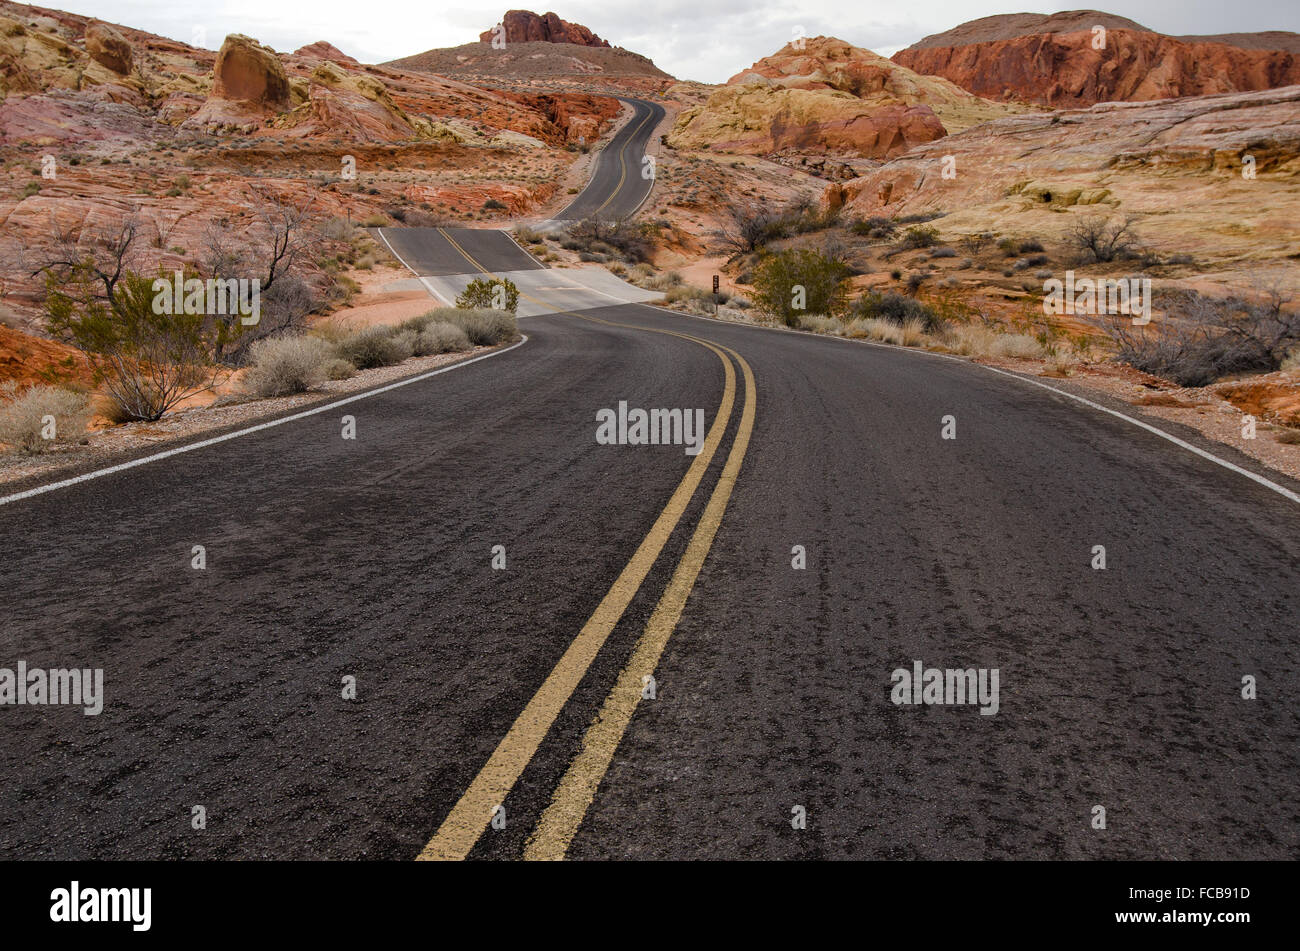 An empty desert road twists and curves through the Valley of Fire State Park. - Stock Image